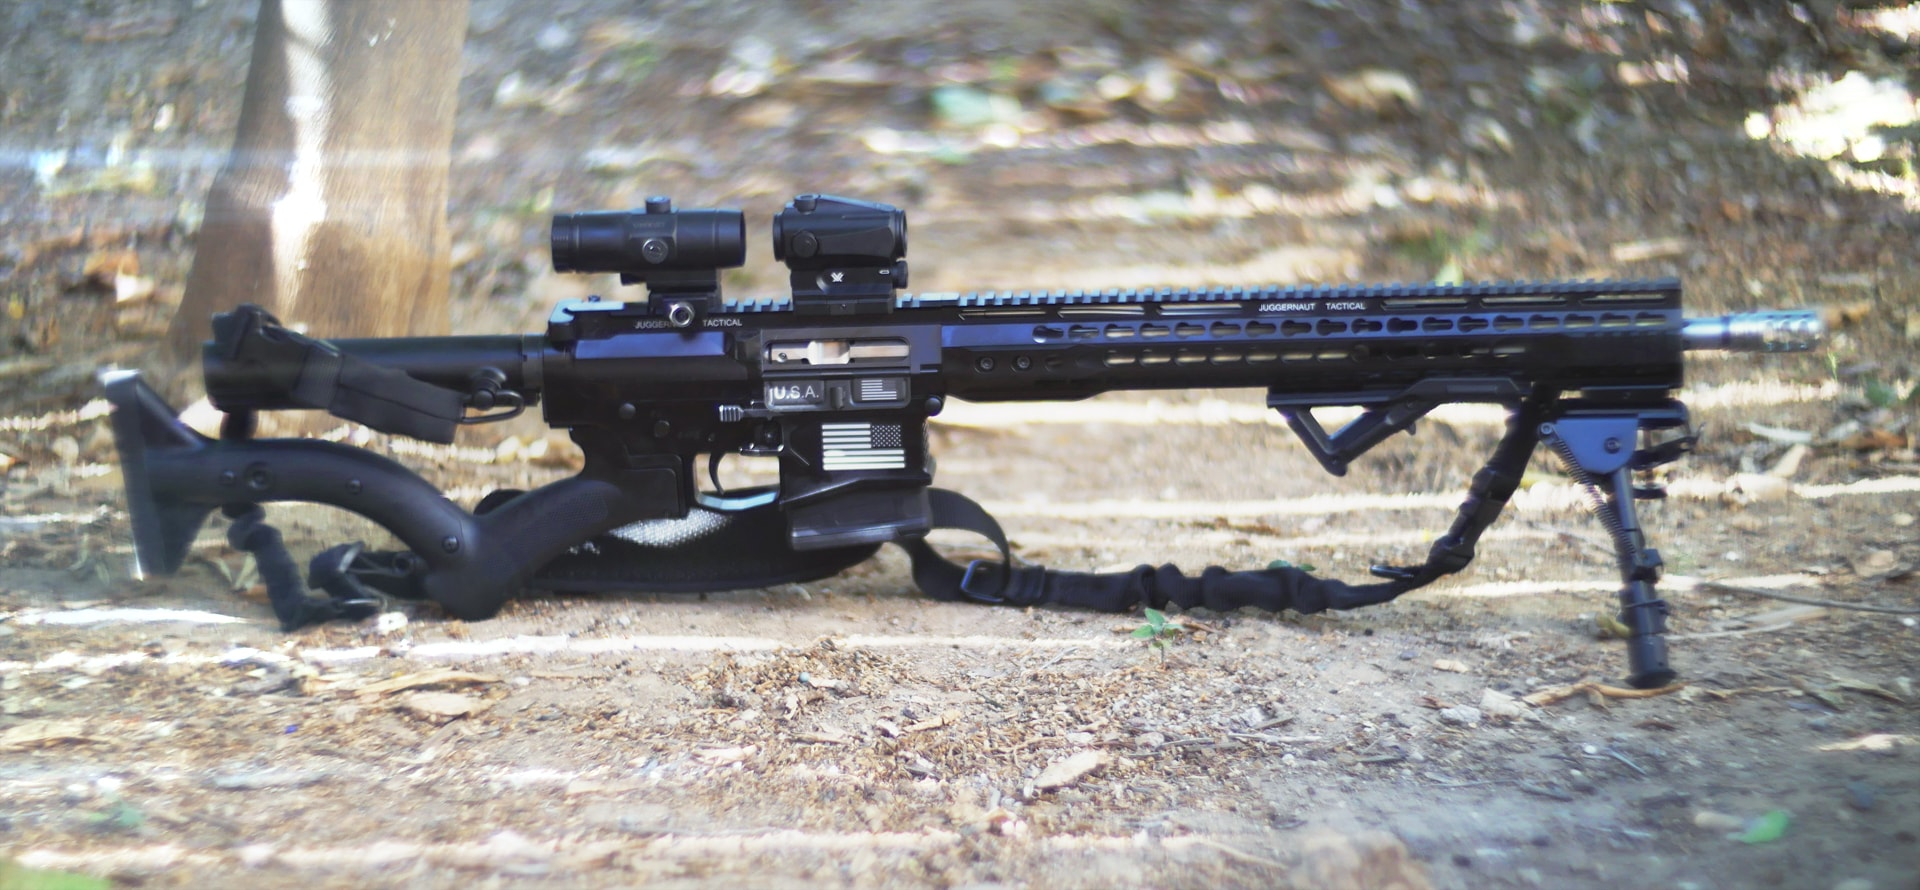 Juggernaut Tactical AR-10 Custom Build (California Compliant) Review